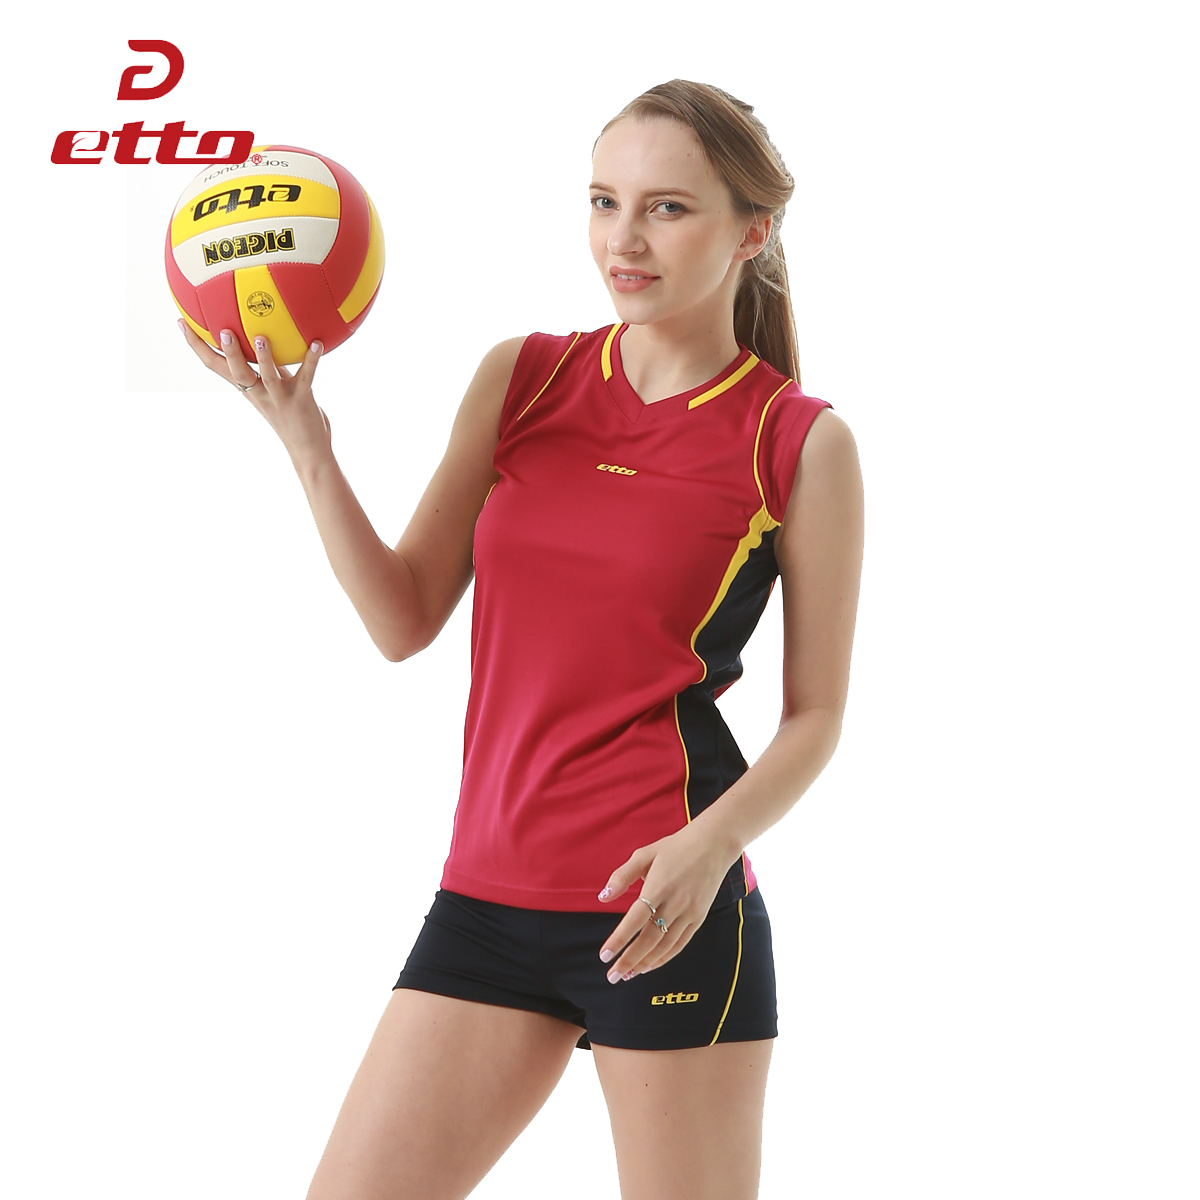 Etto 2018 New Professional Women Volleyball Jerseys Uniforms Sportwear Suit Female Volleyball Sleeveless Training Kits HXB008